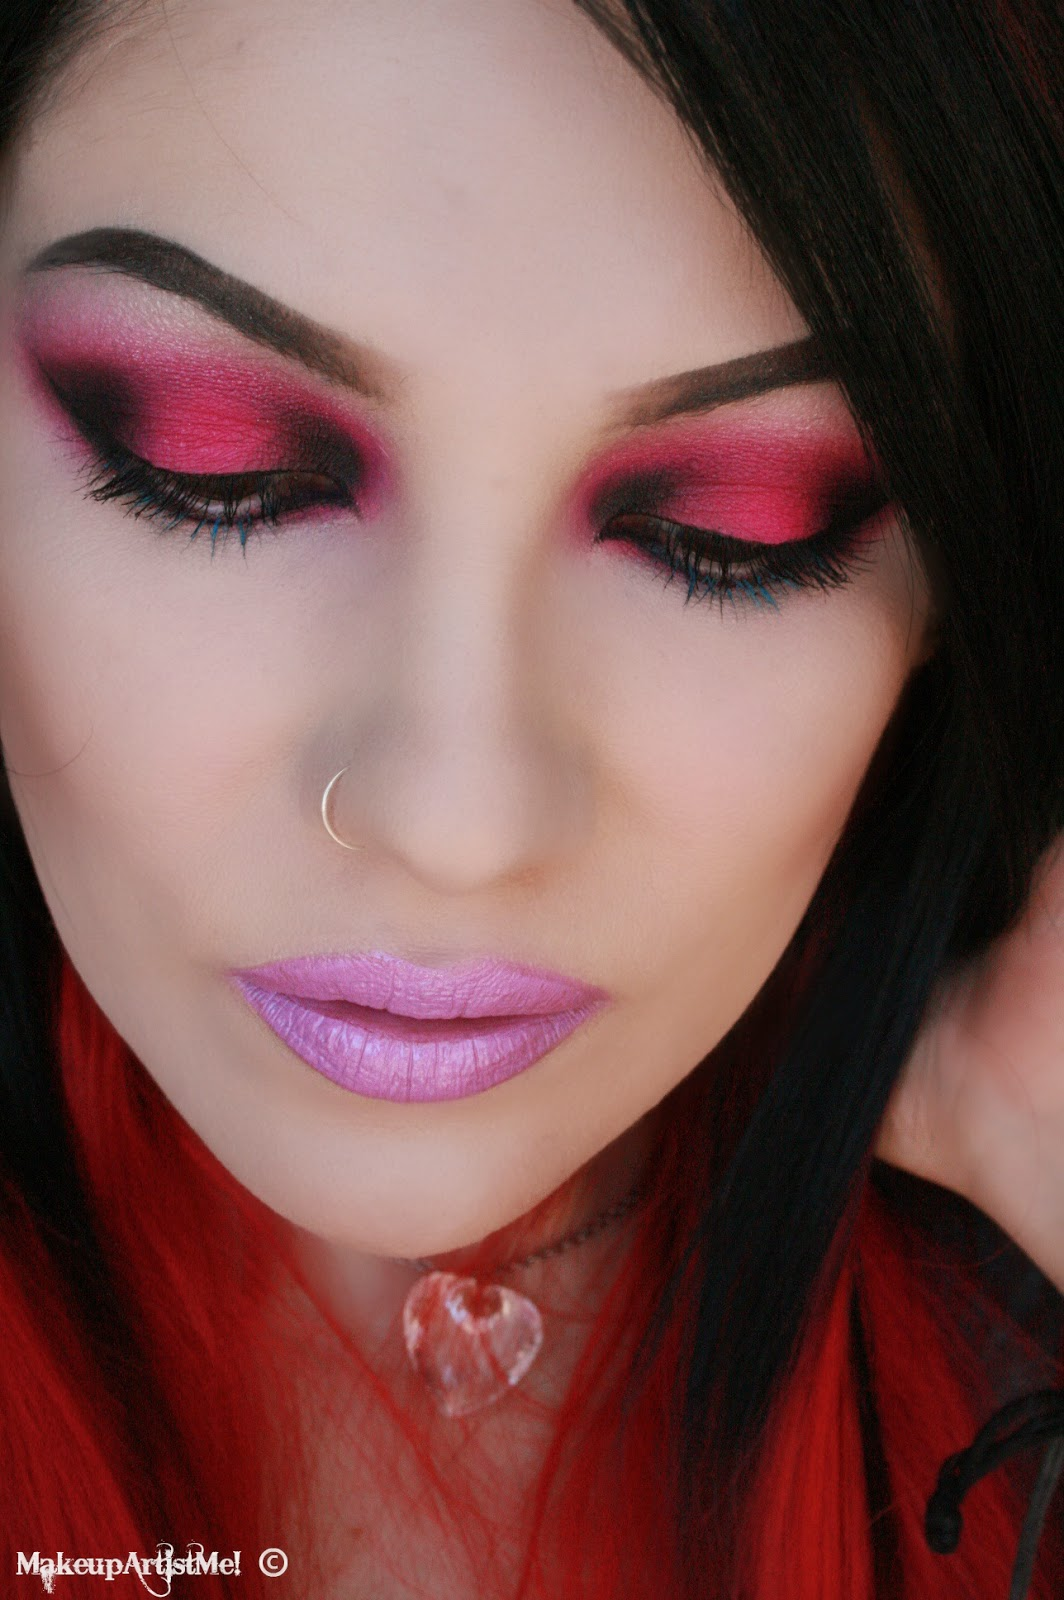 Make Up Tutorials Youtube: Make-up Artist Me!: Rock Chick! Makeup Tutorial